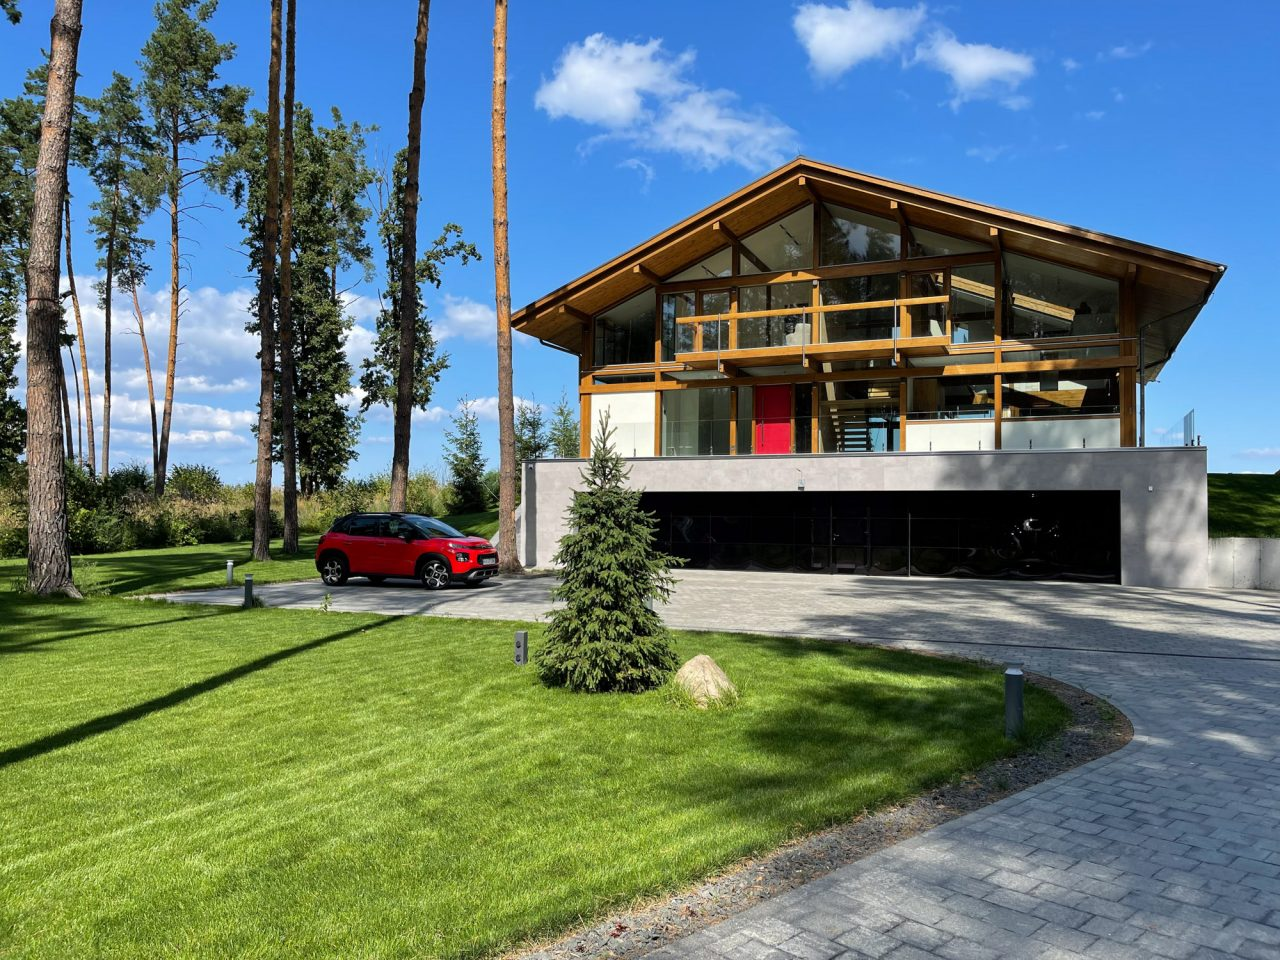 Hlass_house_KAGER - Hurii_12